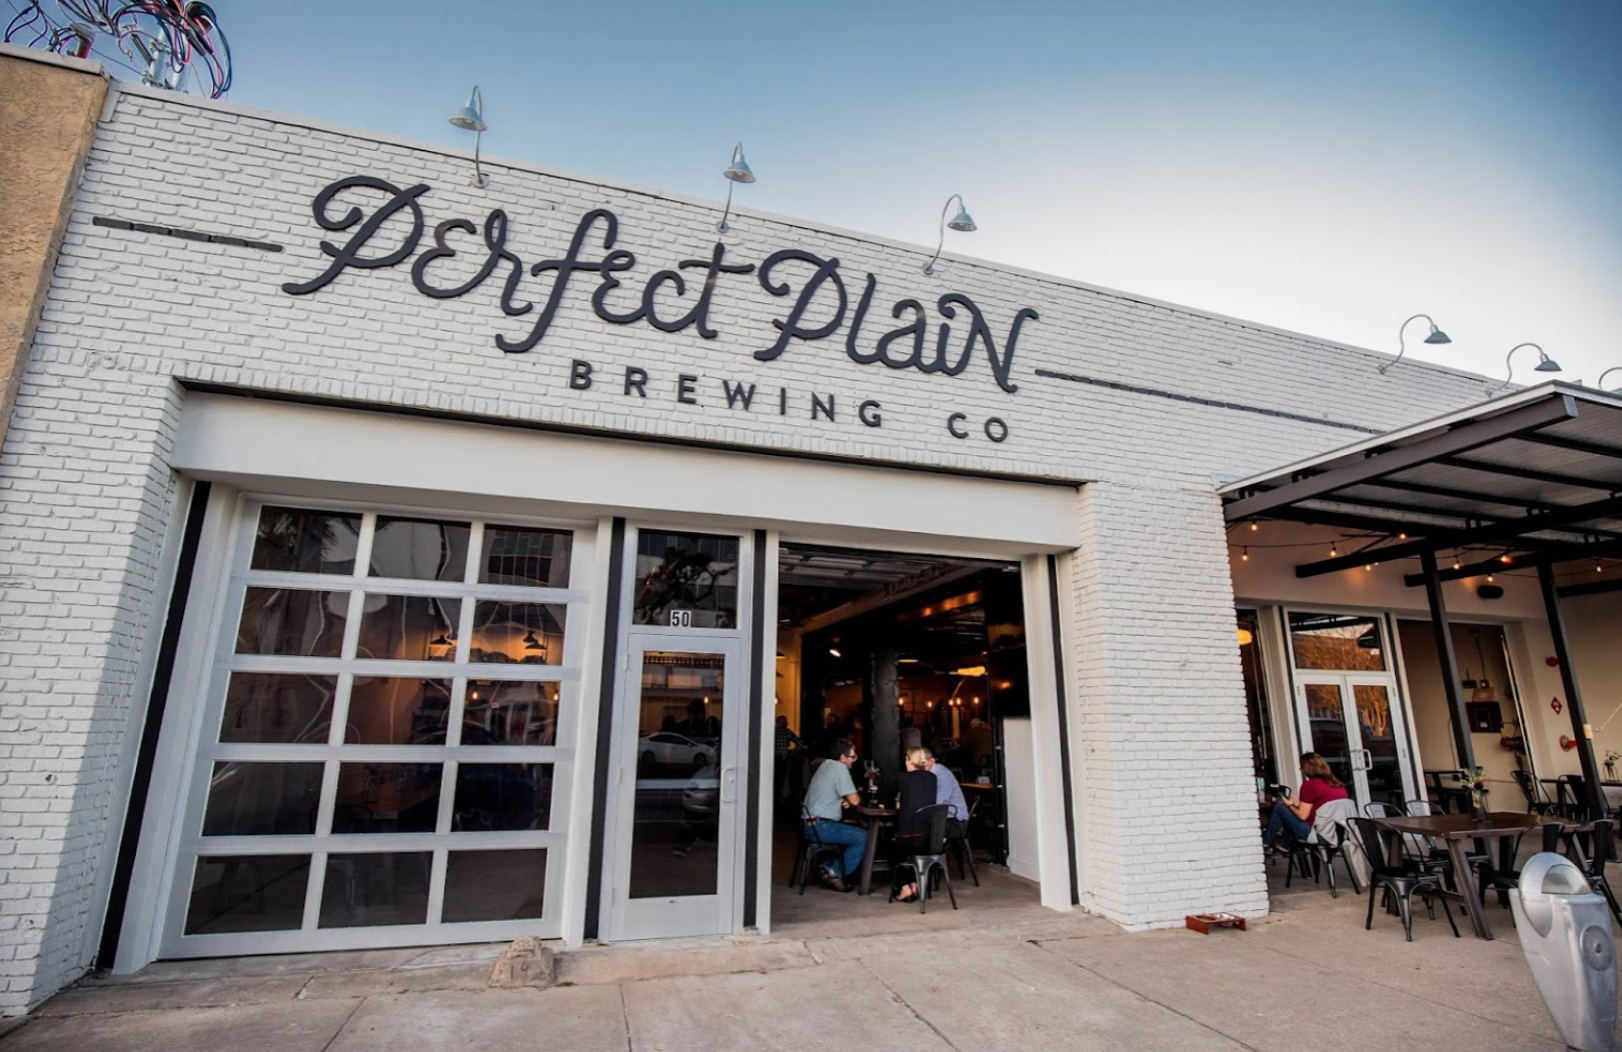 photo credit:  Perfect Plain Brewing Co